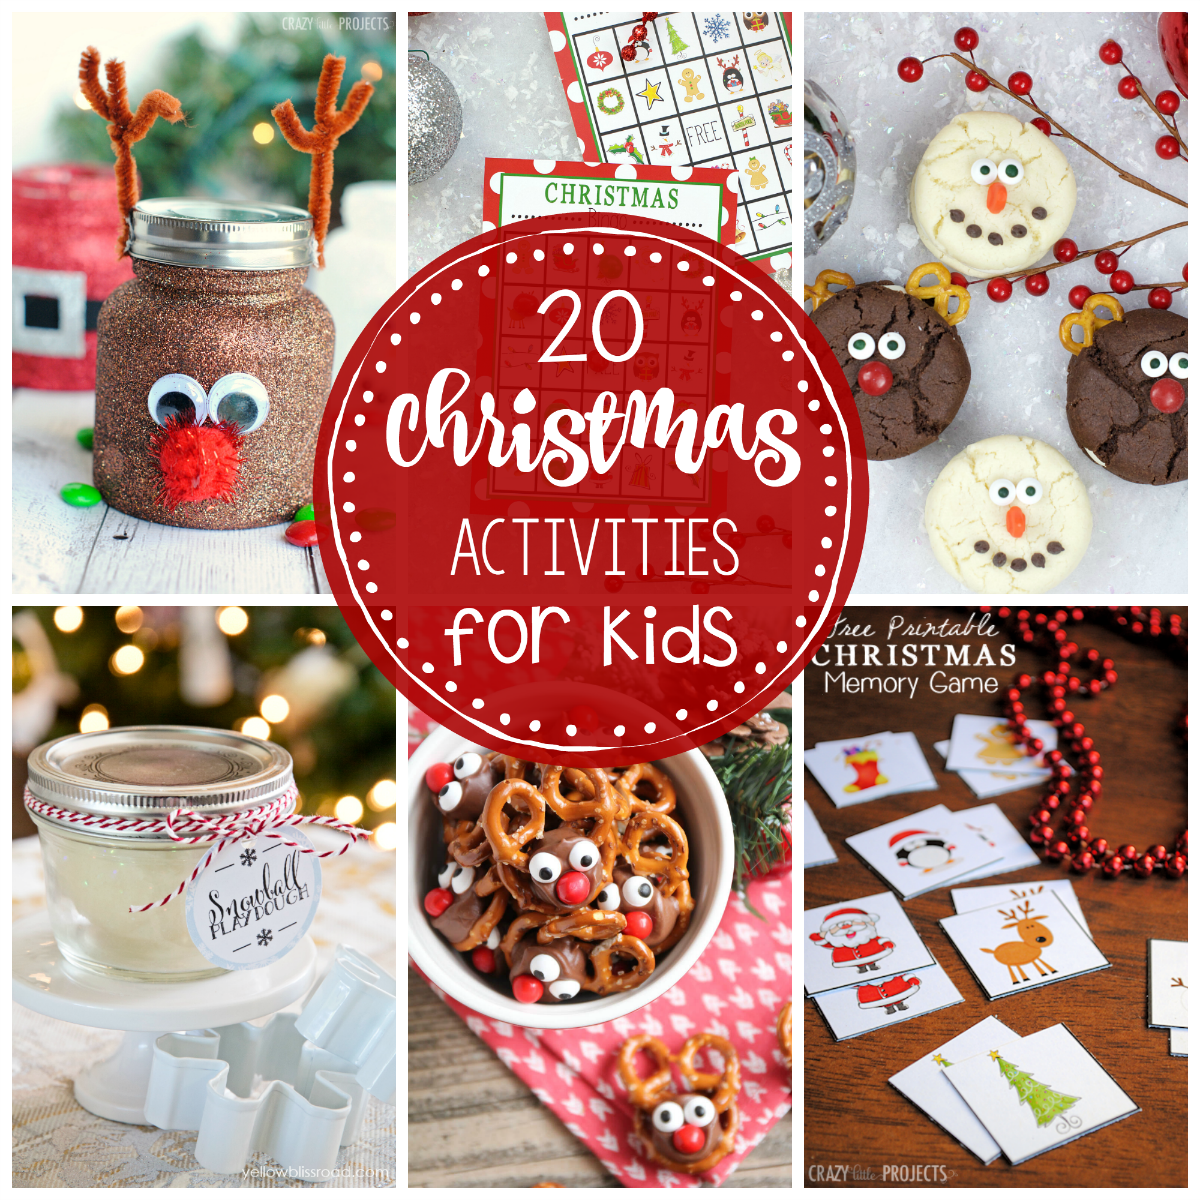 25 Fun Christmas Activities for Kids,Crazy Little Projects